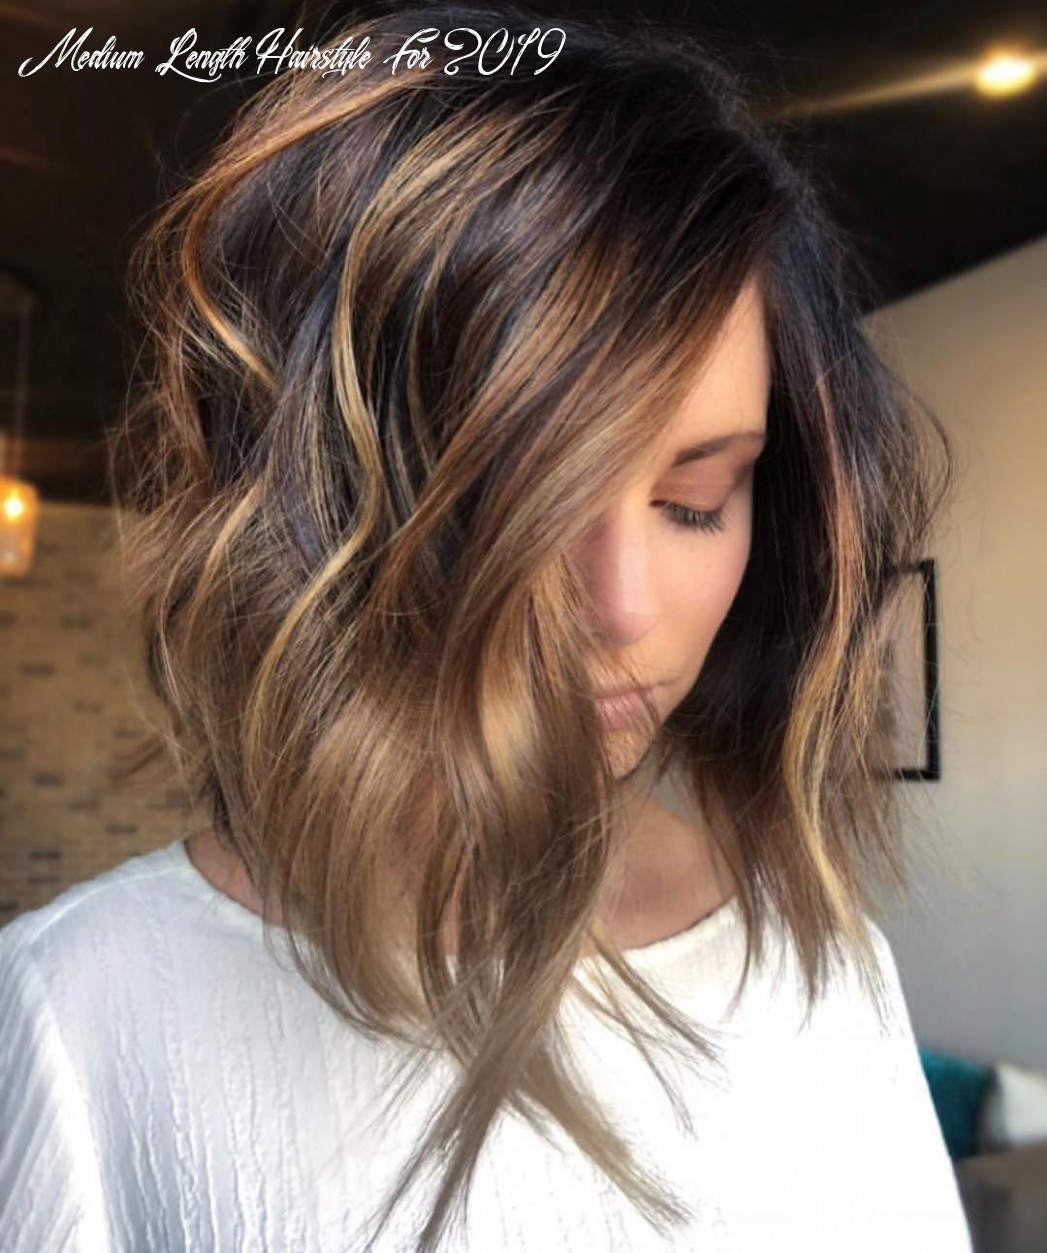 Hairstyles medium length 8 medium length hairstyle for 2019